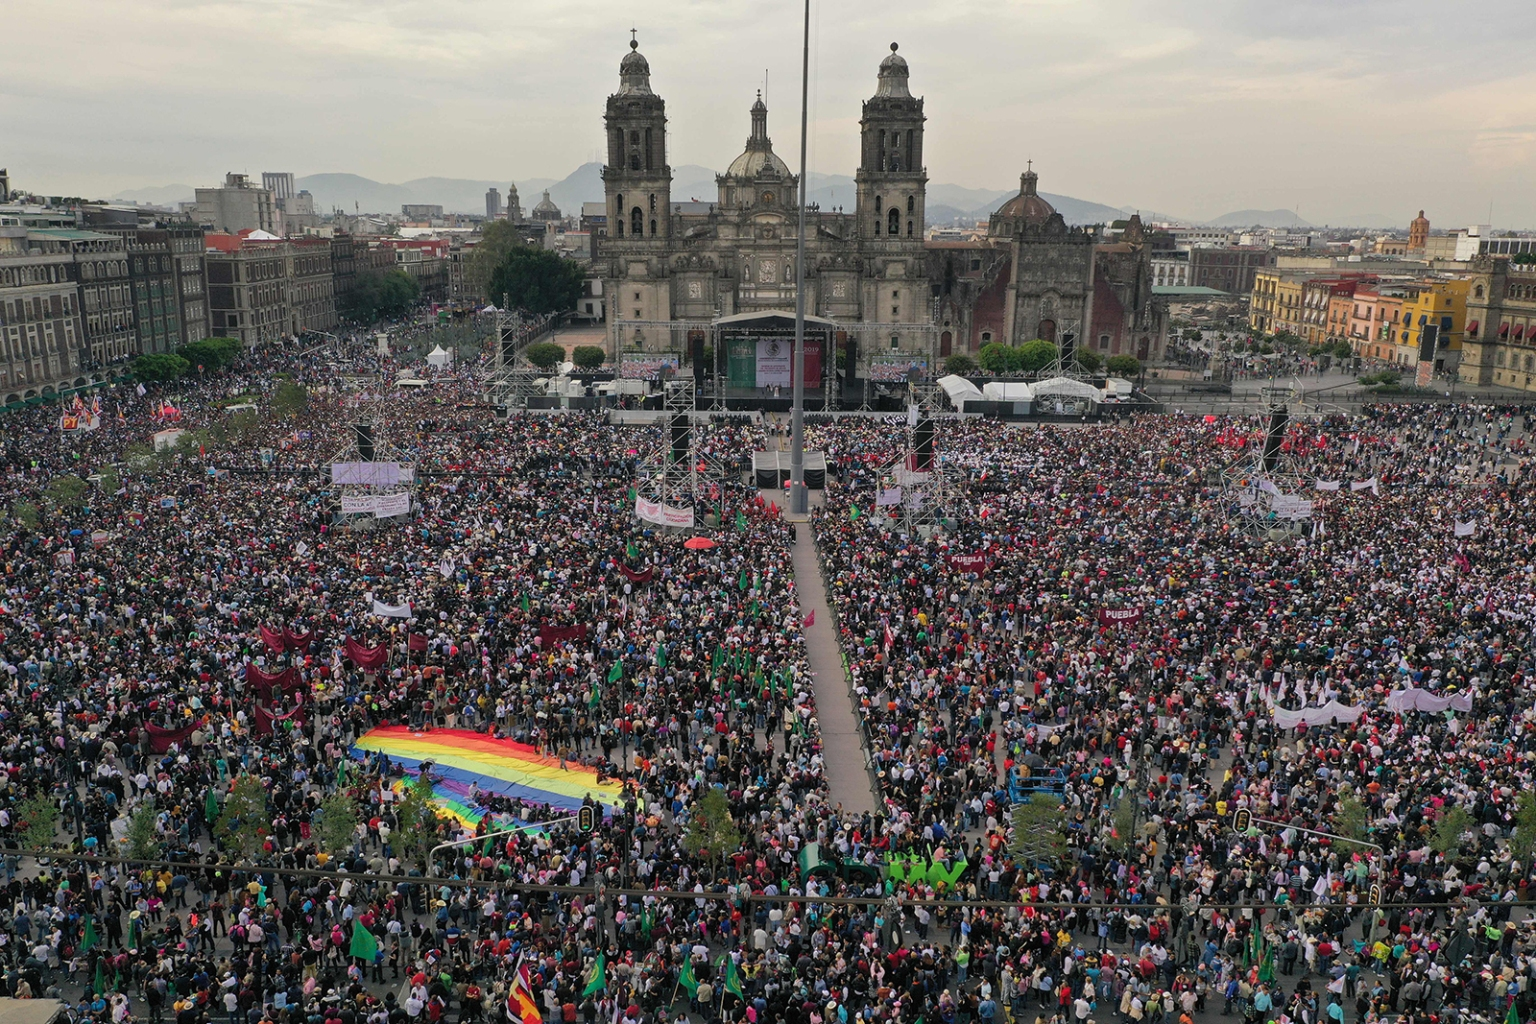 People crowd Zocalo Square where Mexican President Andres Manuel Lopez Obrador was due to present his government report in Mexico City on July 1. ALFREDO ESTRELLA/AFP/Getty Images